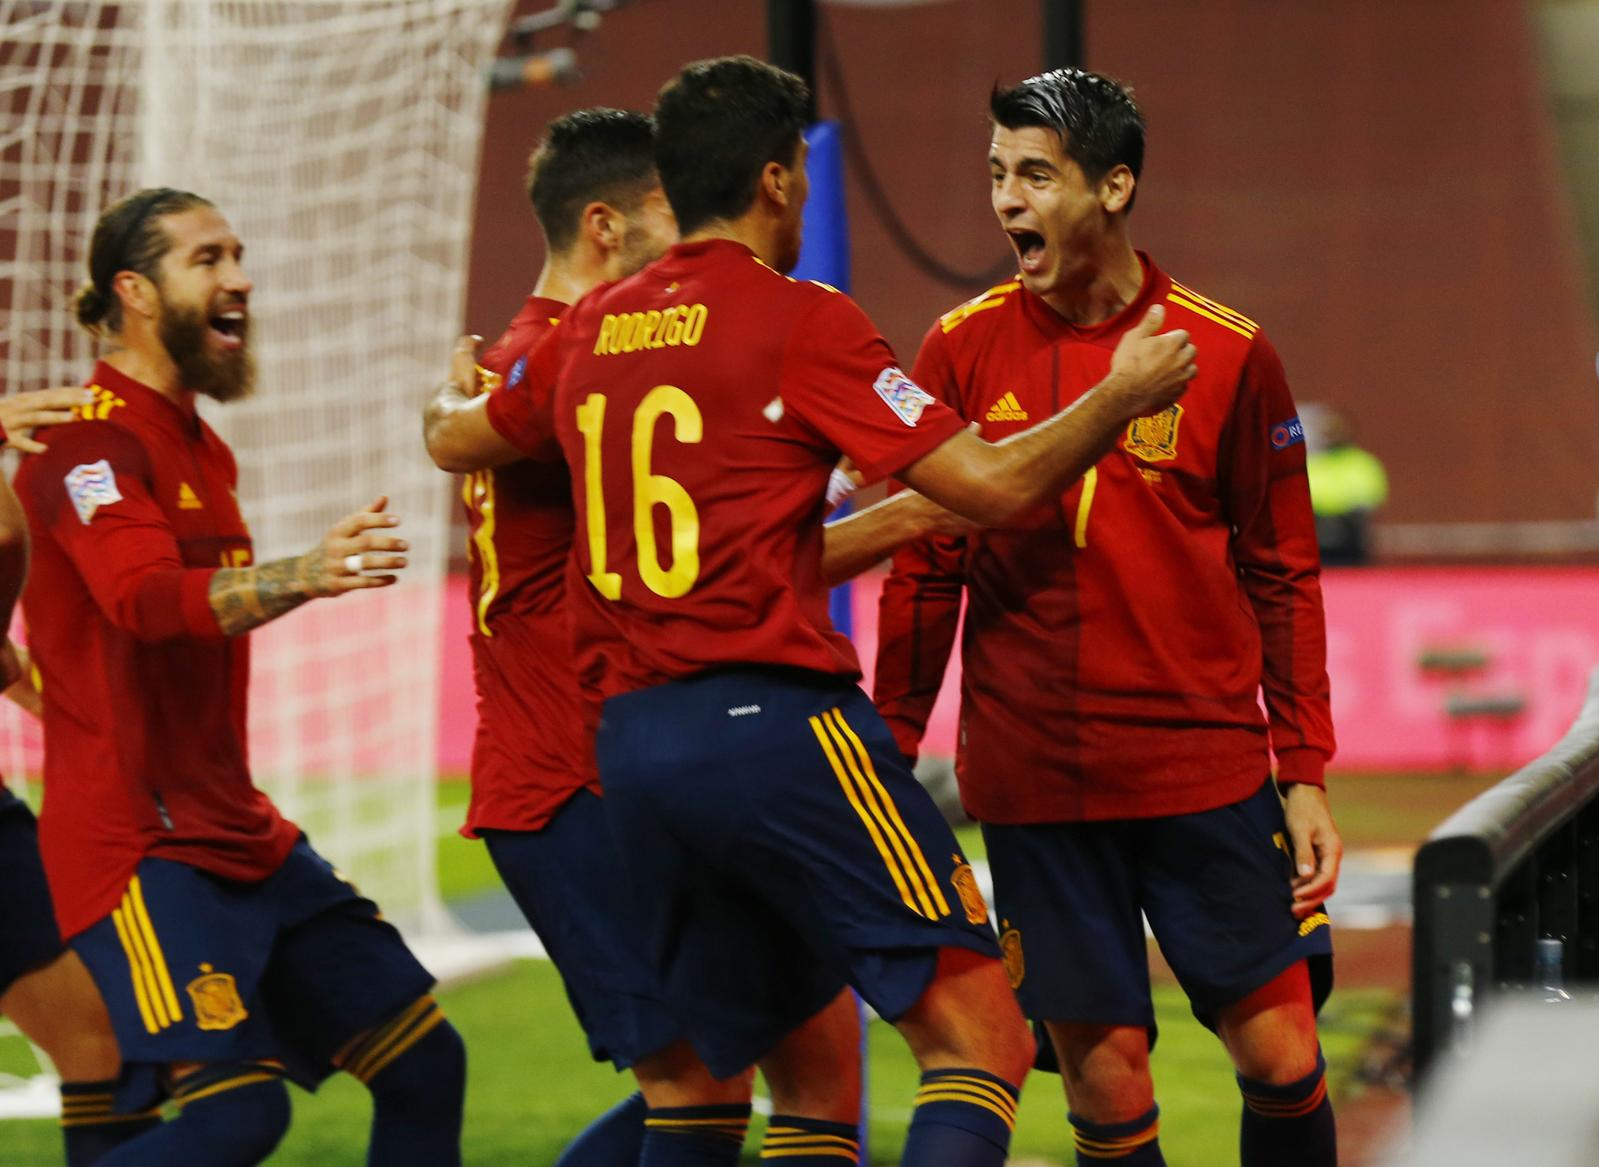 Spain hammer Germany 6-0 to reach Nations League final four